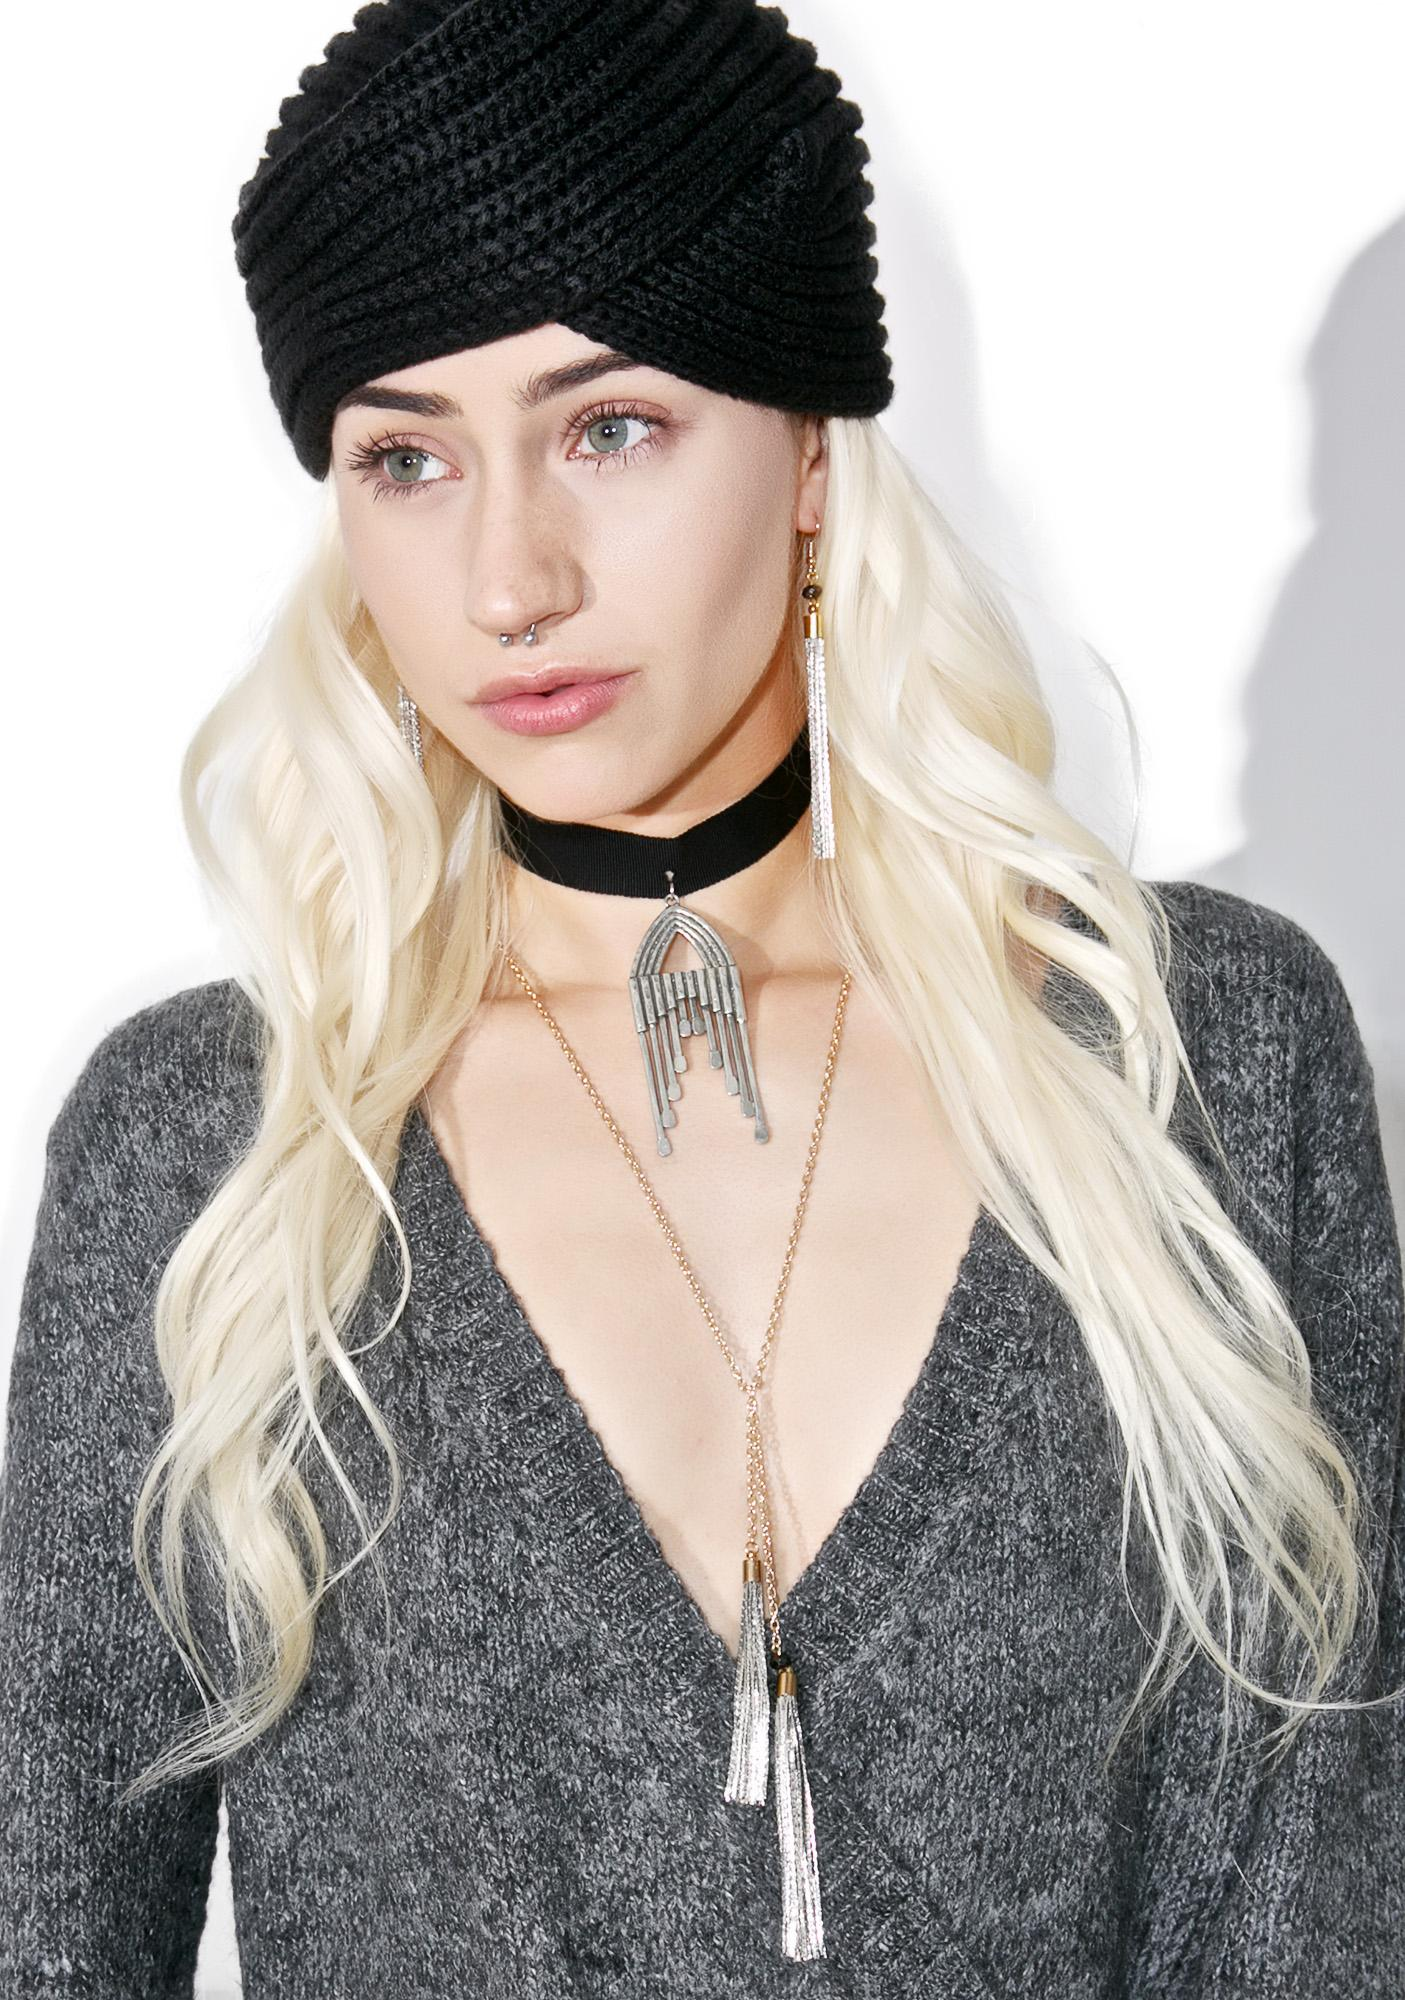 The 2Bandits Long Motif Choker